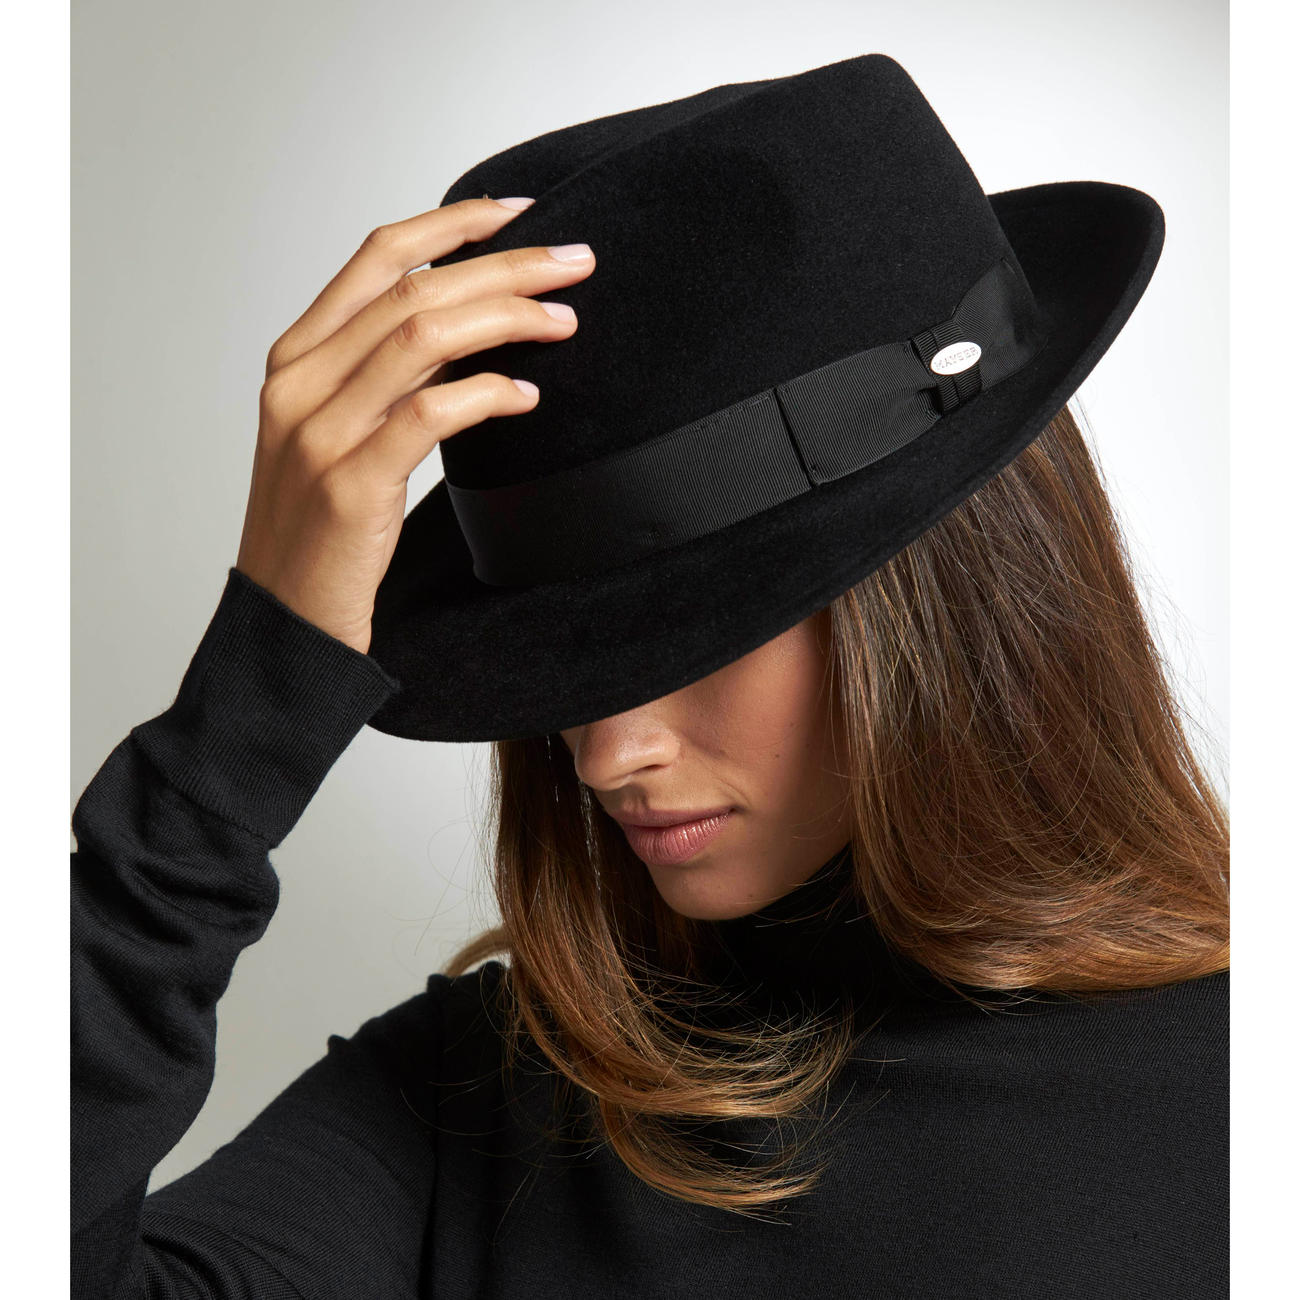 Shop for womens fedora headwear online at Target. Free shipping on purchases over $35 and save 5% every day with your Target REDcard.